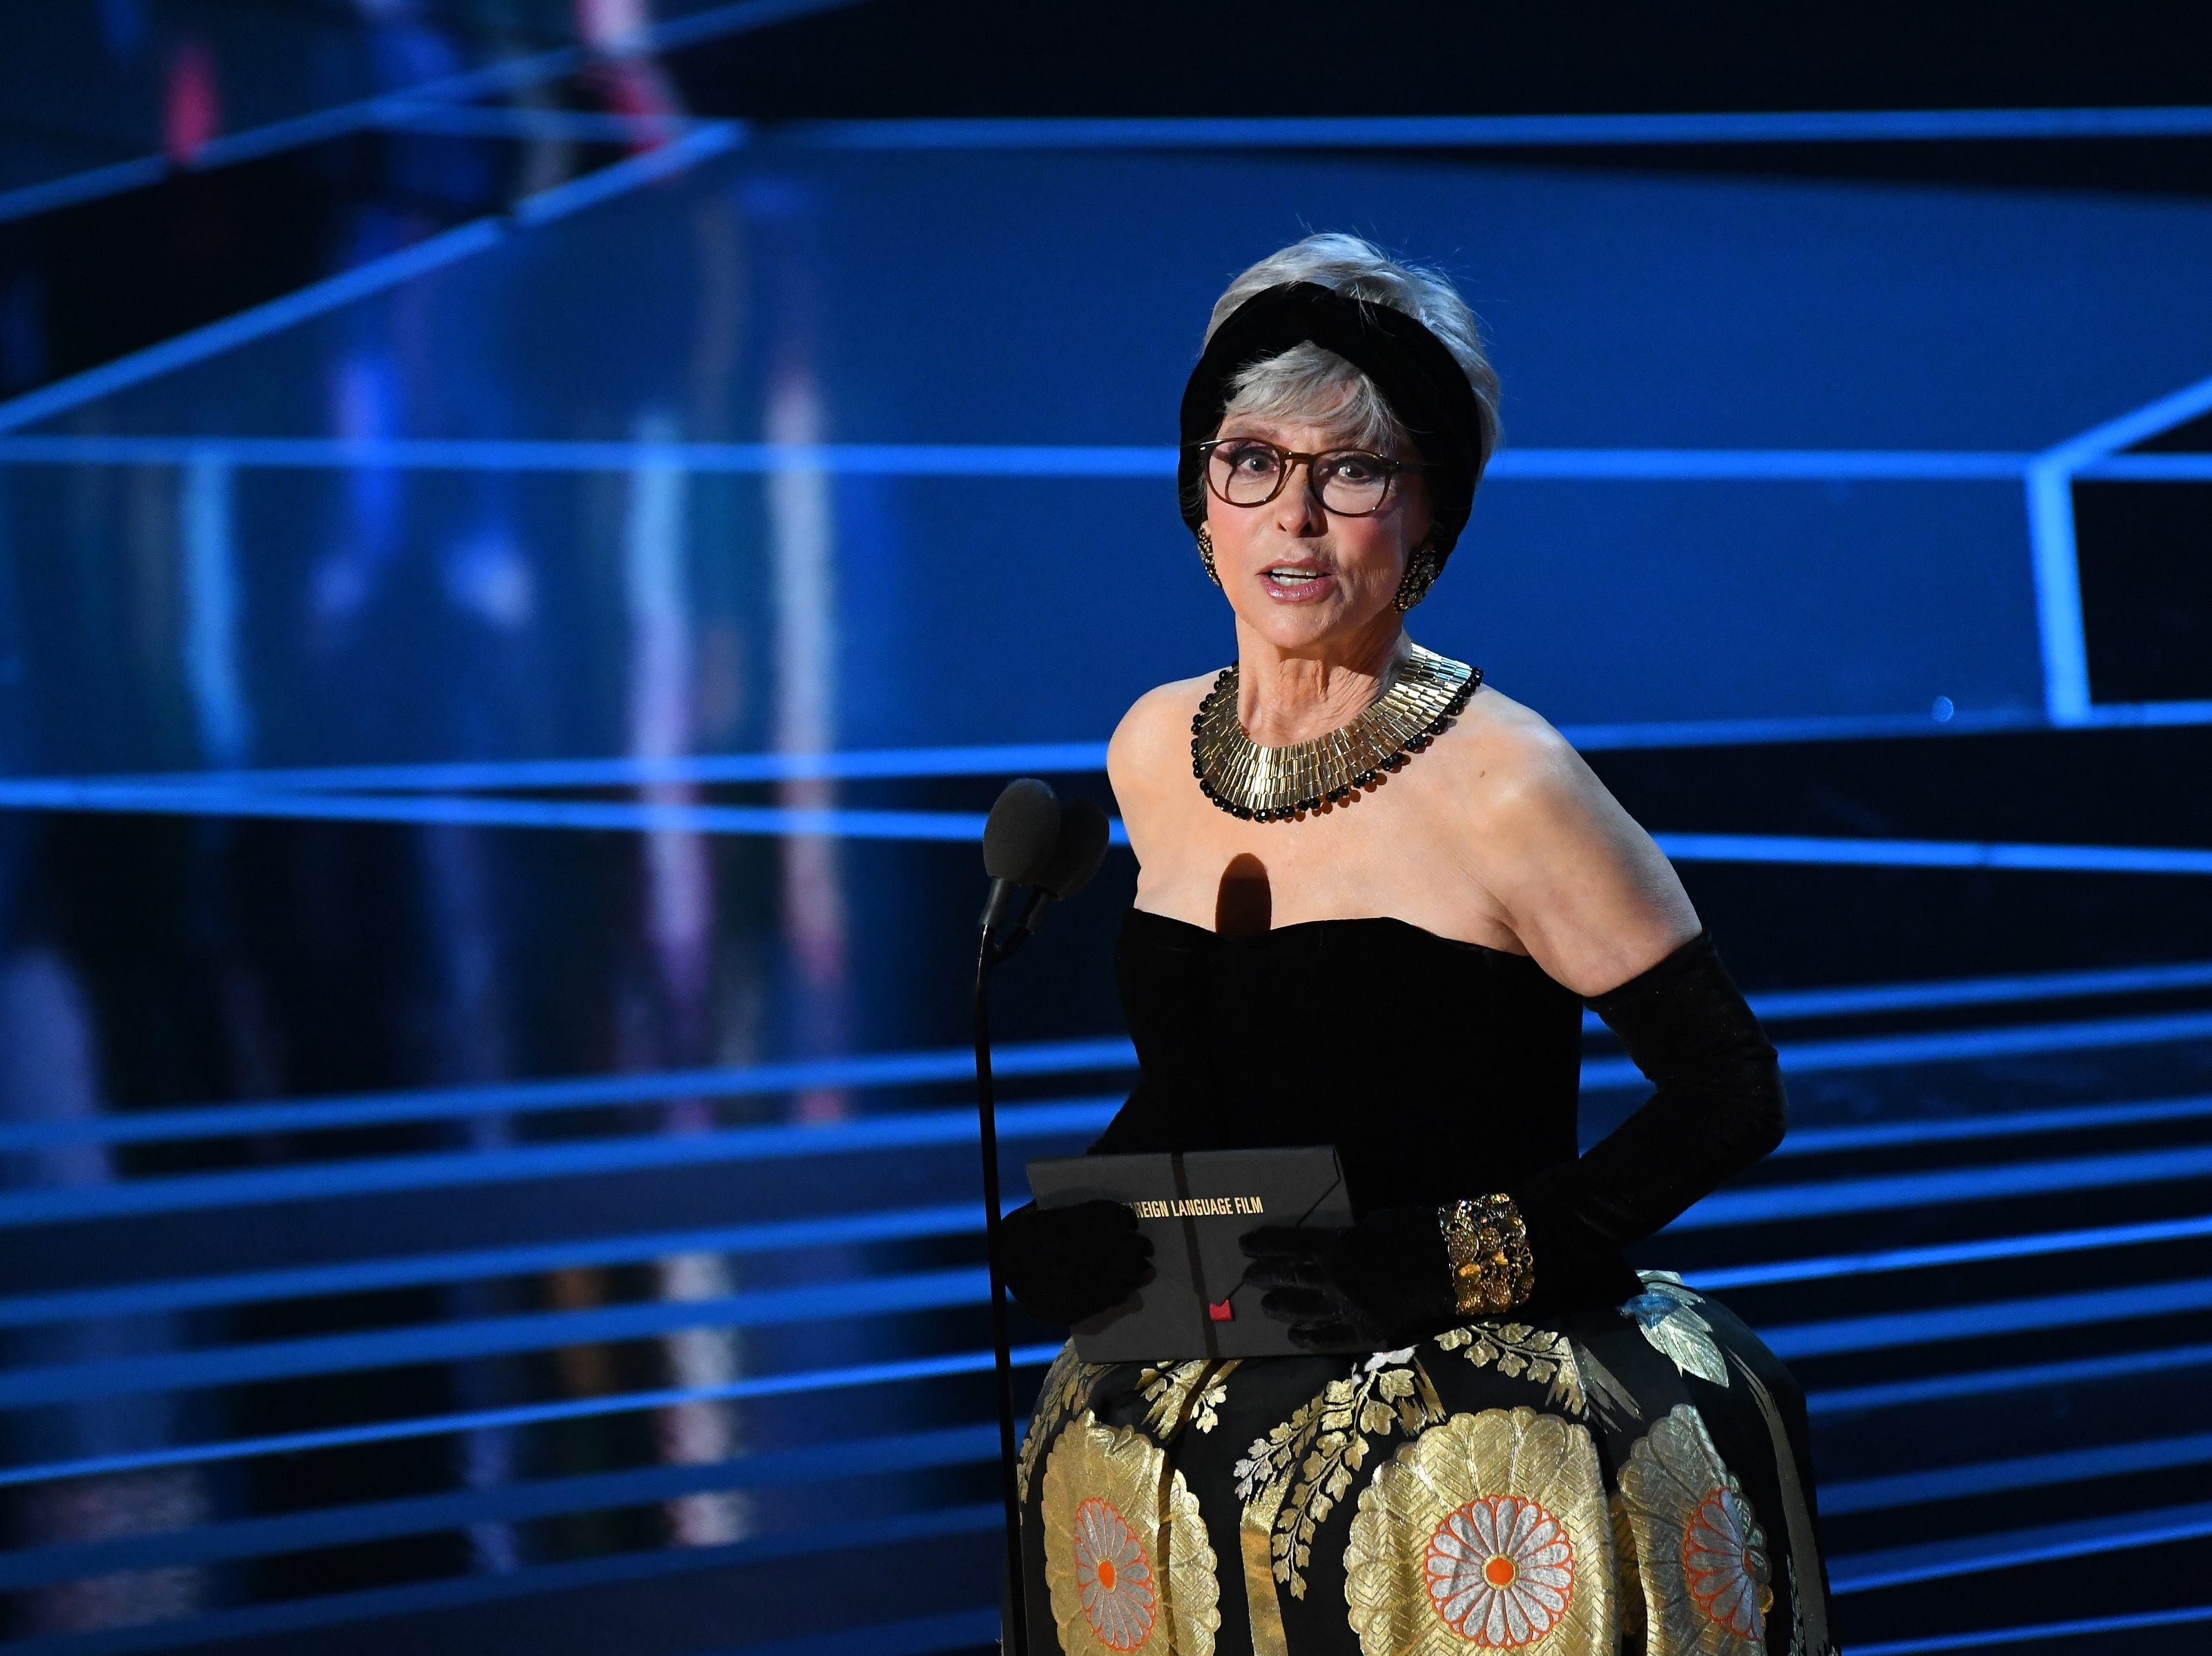 March 4: Rita Moreno presents at the Oscars while wearing the same dress she wore to the 1962 award show.